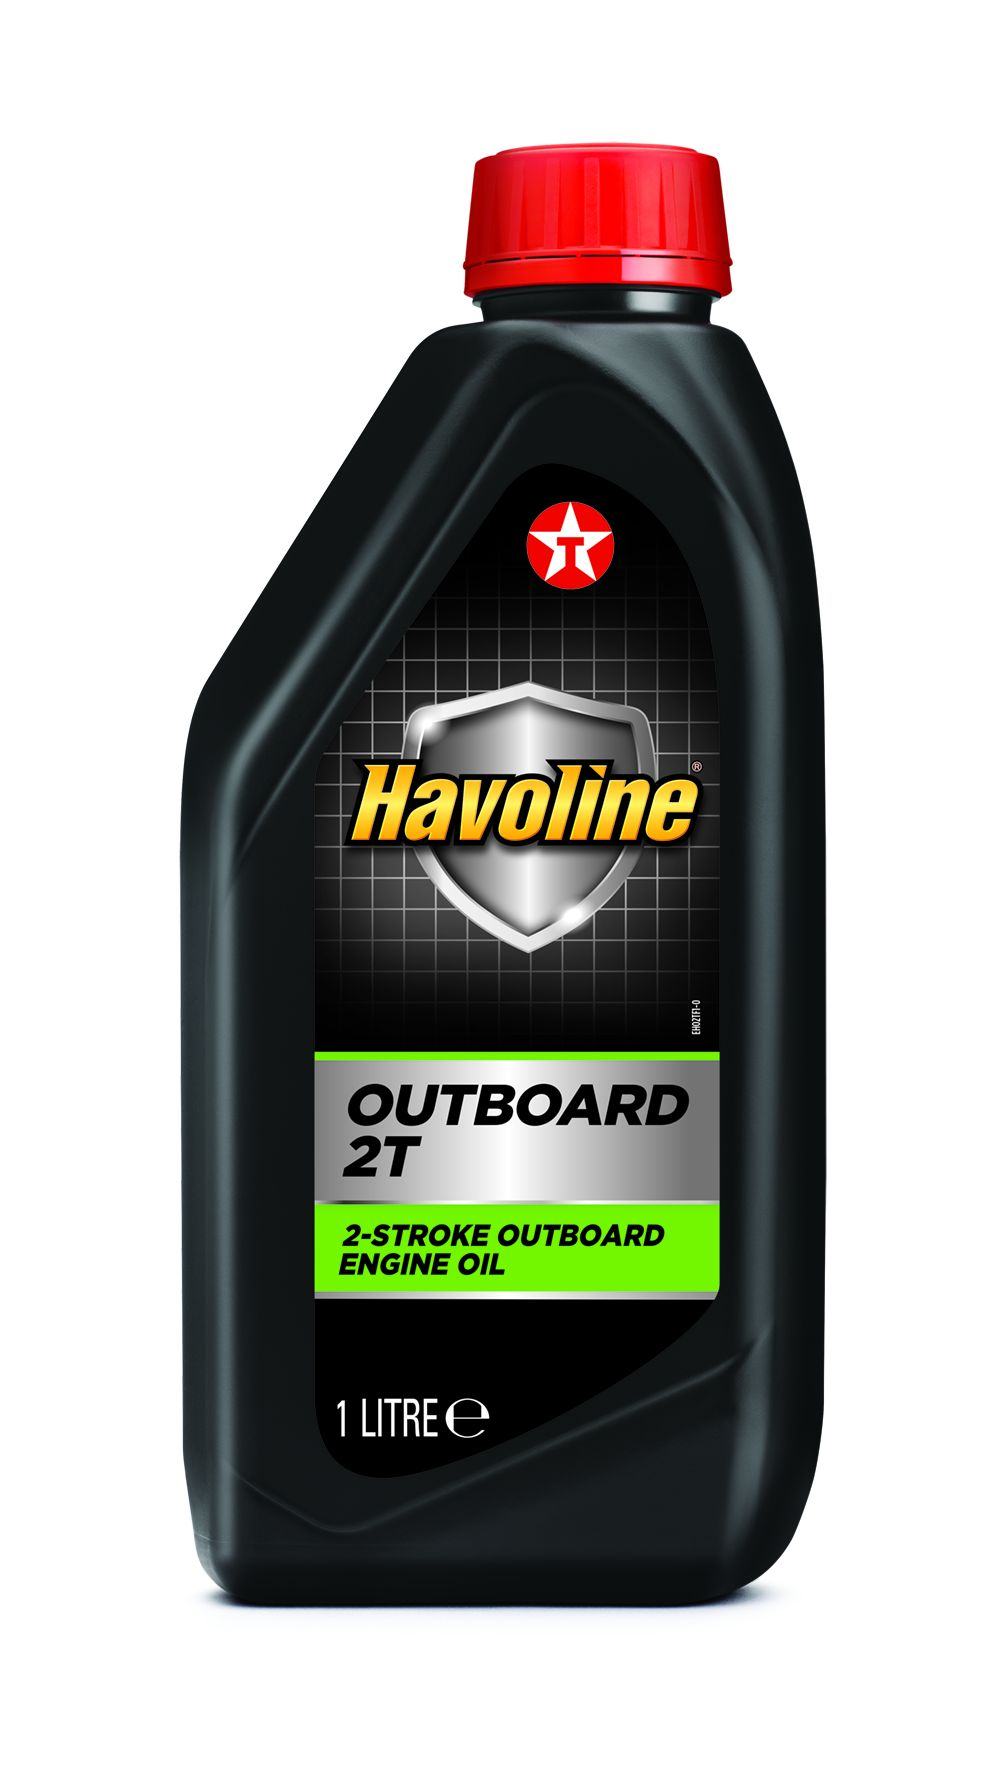 HAVOLINE OUTBOARD 2T